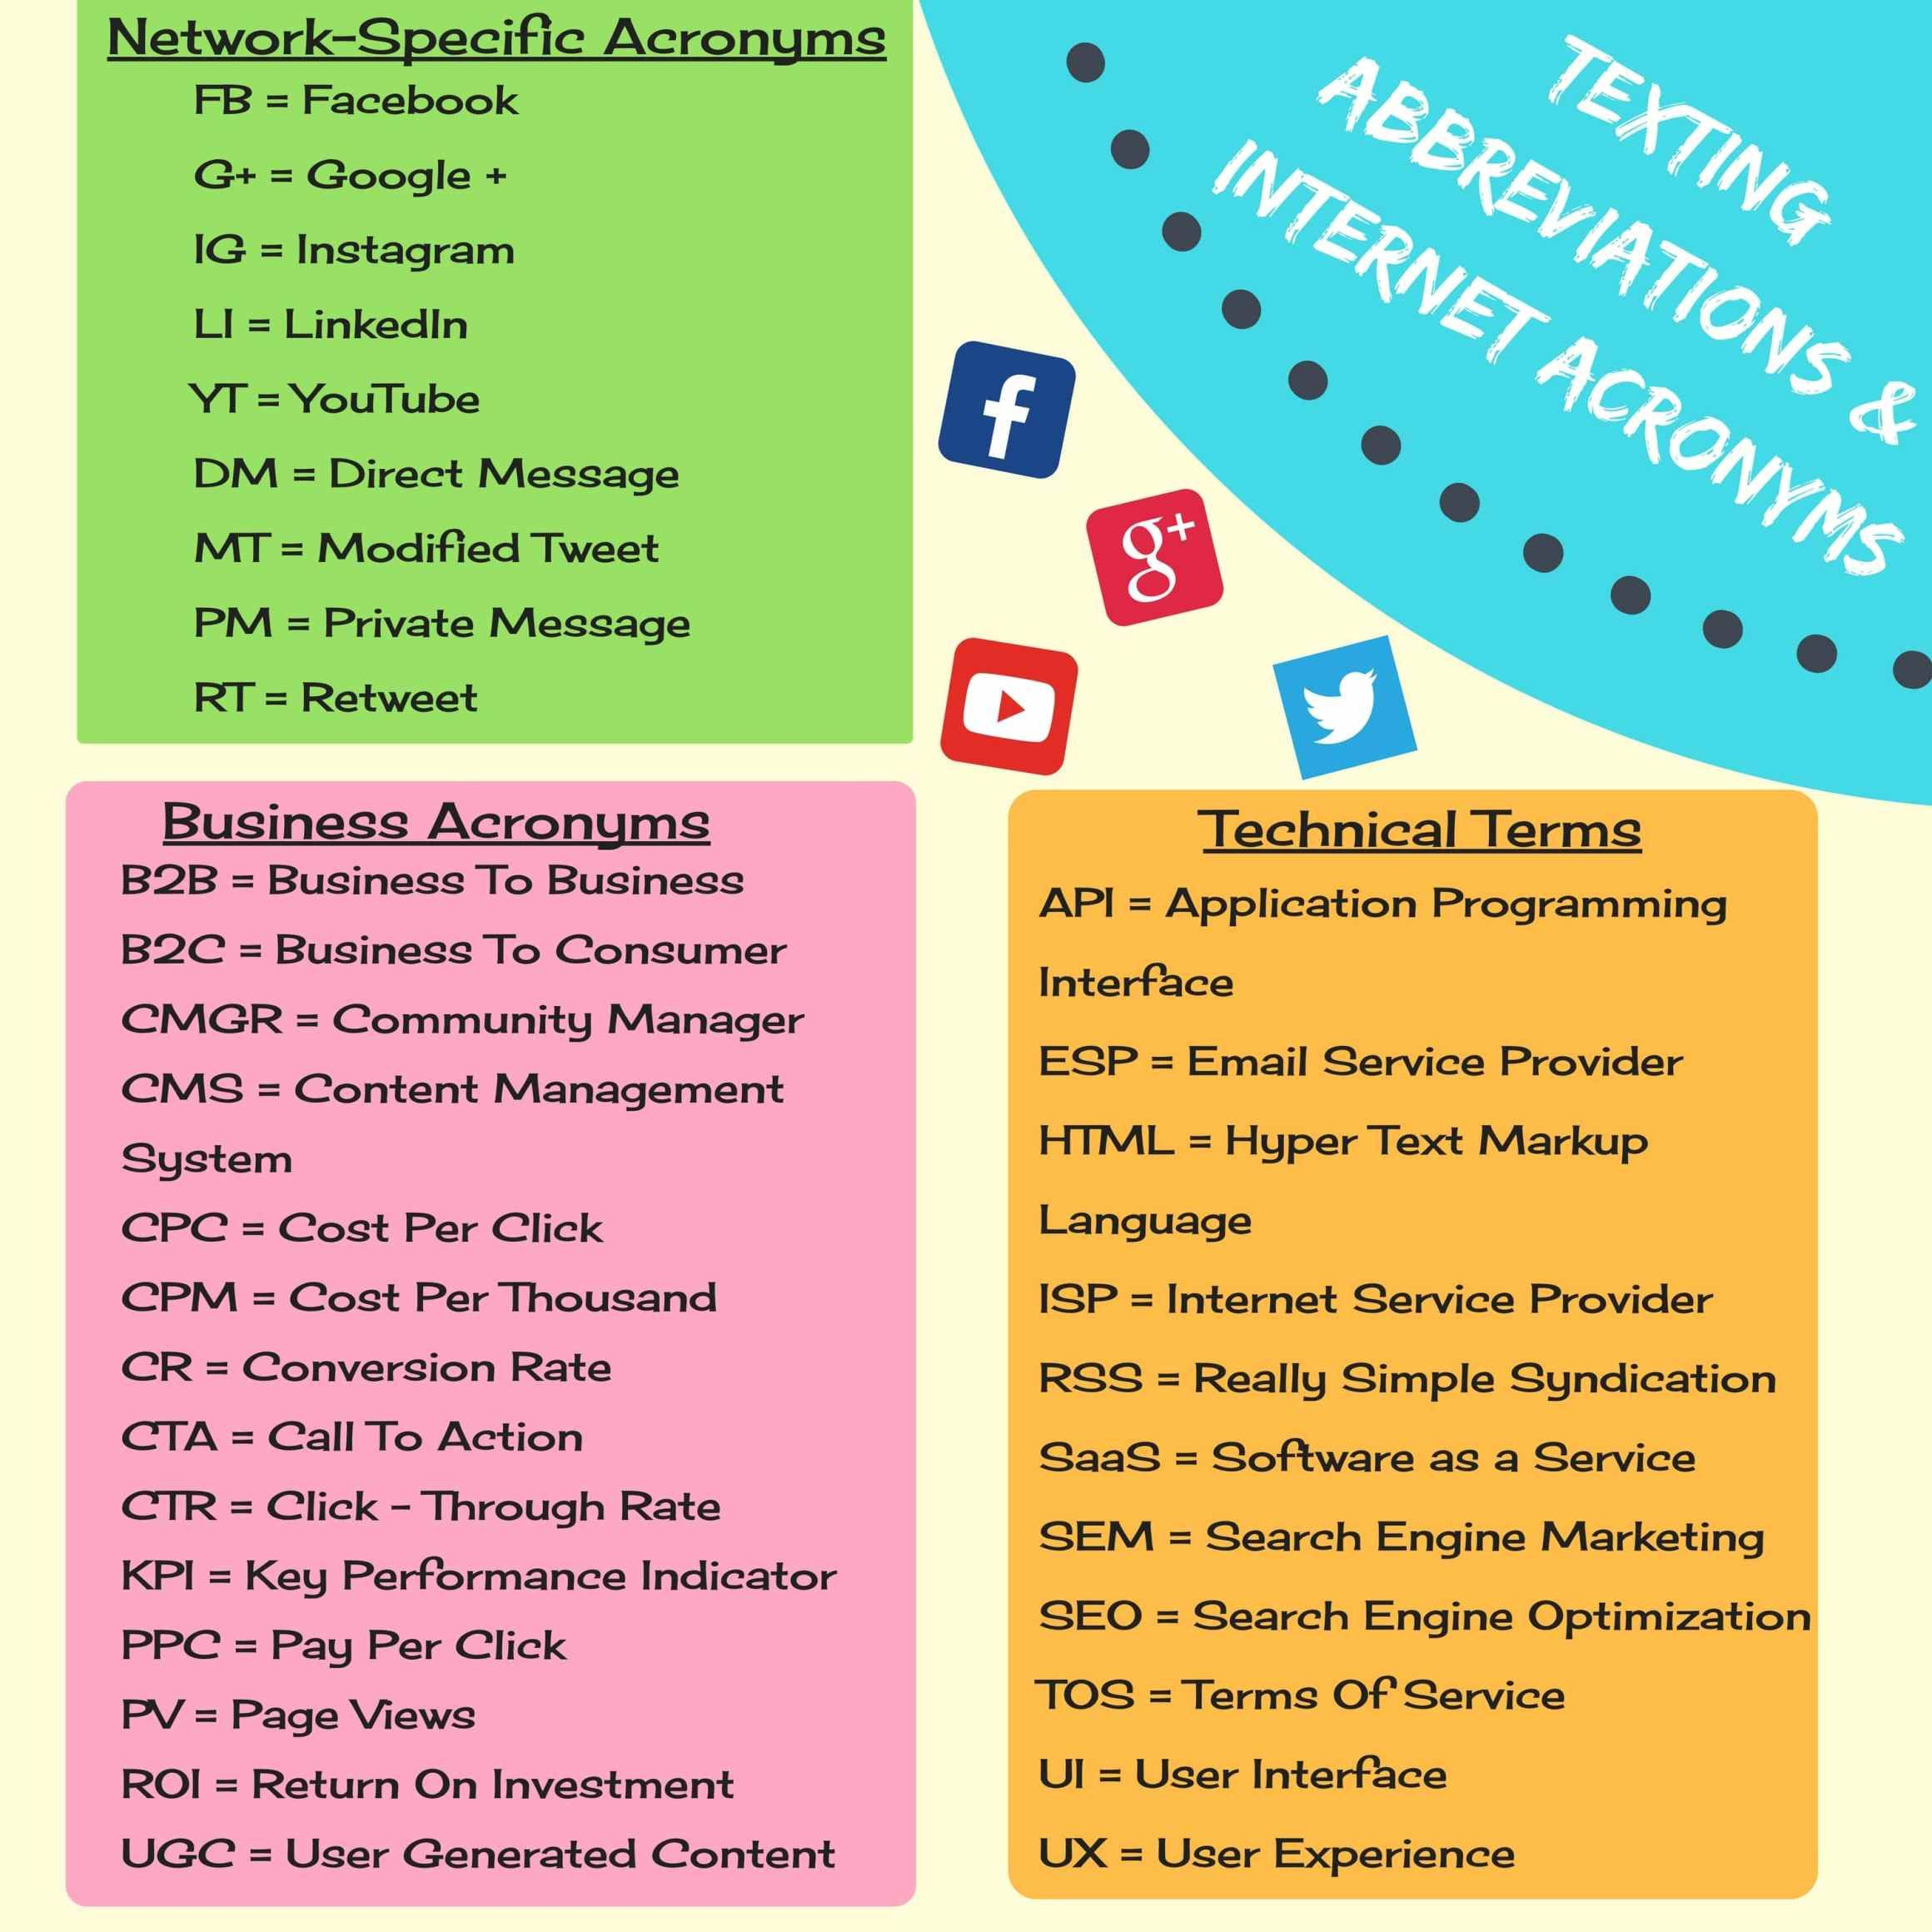 Commonly Used Texting Abbreviations And Internet Acronyms